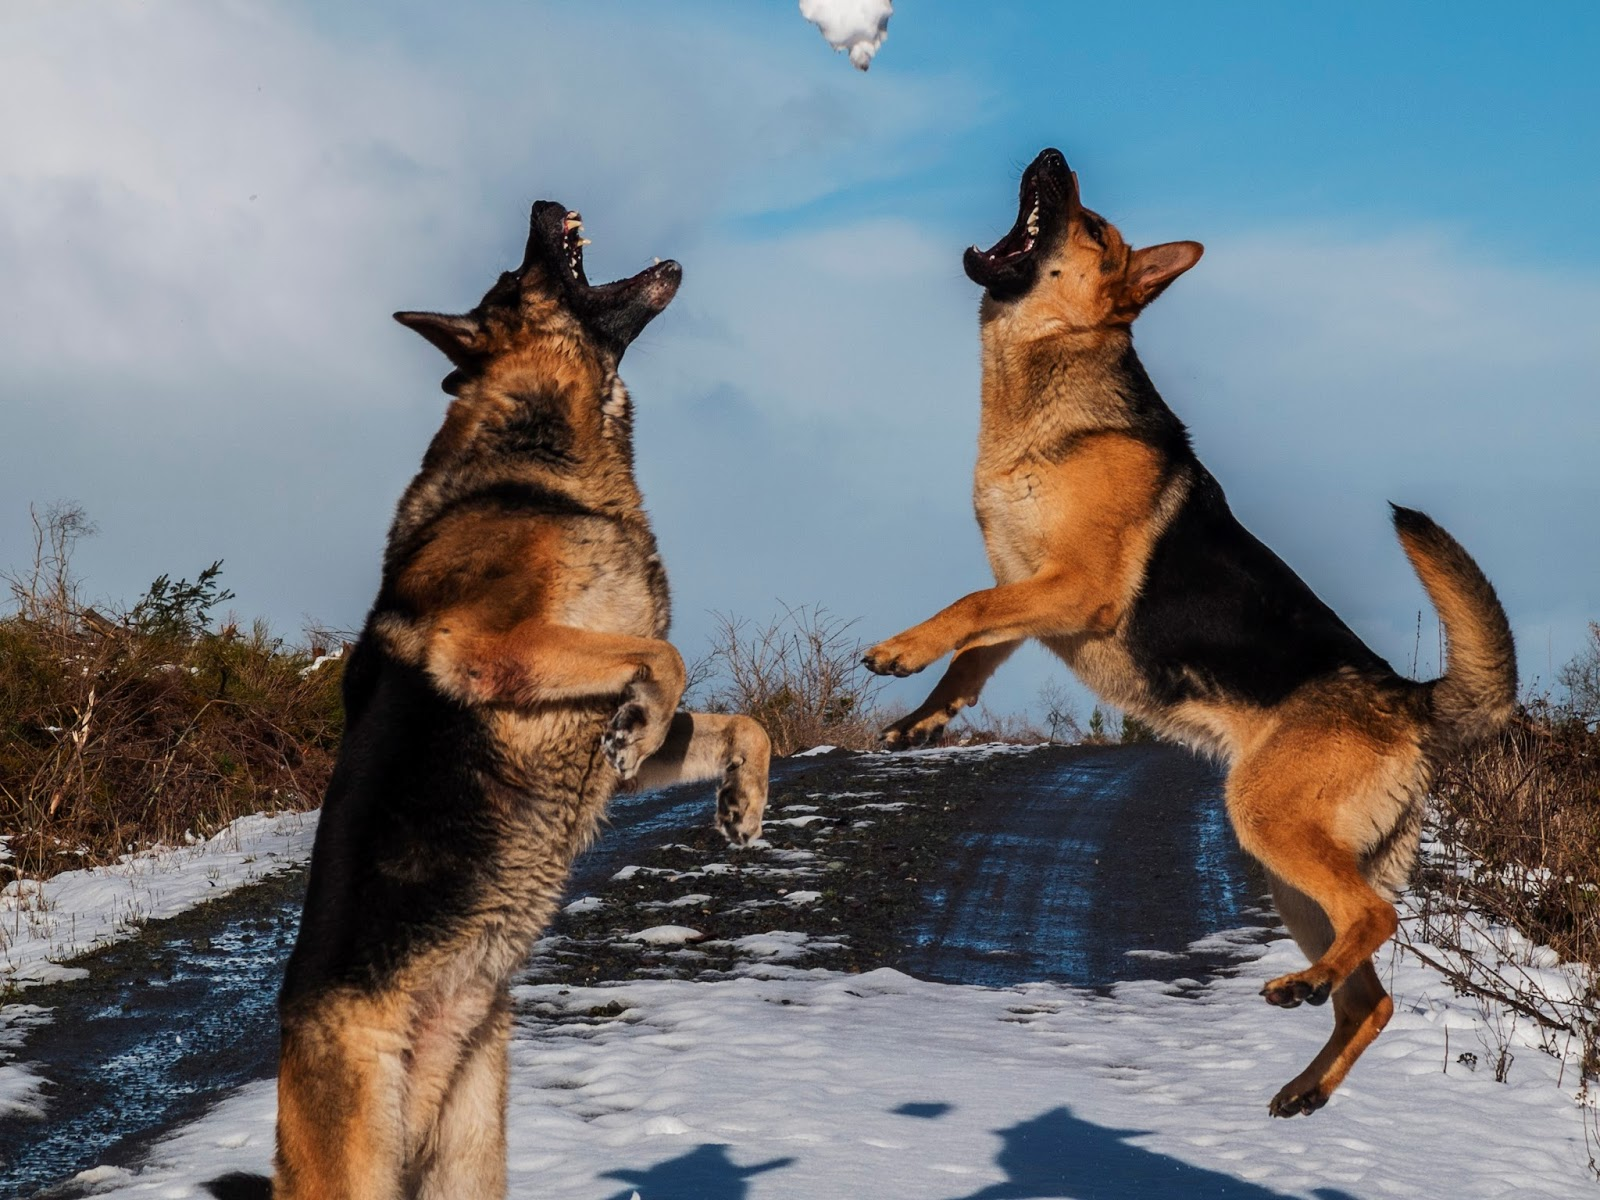 Two German Shepherds jumping and a snowball in mid air between them.